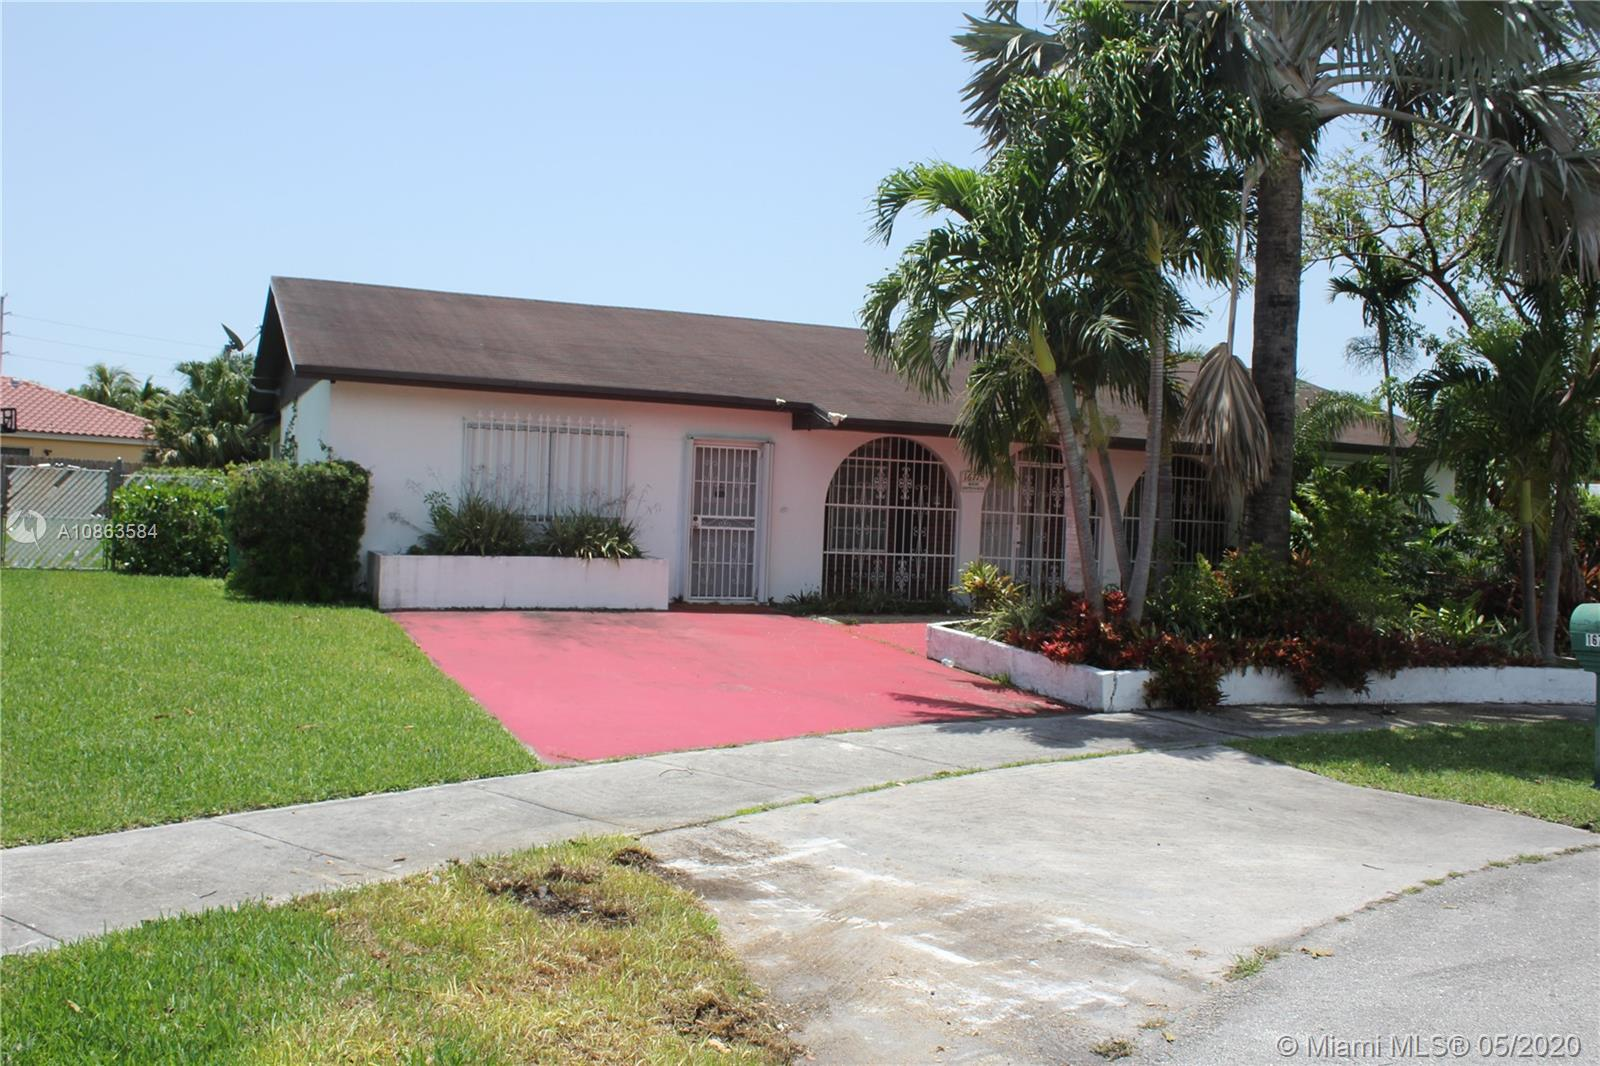 16713 SW 107th Pl, Miami, Florida 33157, 3 Bedrooms Bedrooms, ,2 BathroomsBathrooms,Residential,For Sale,16713 SW 107th Pl,A10863584